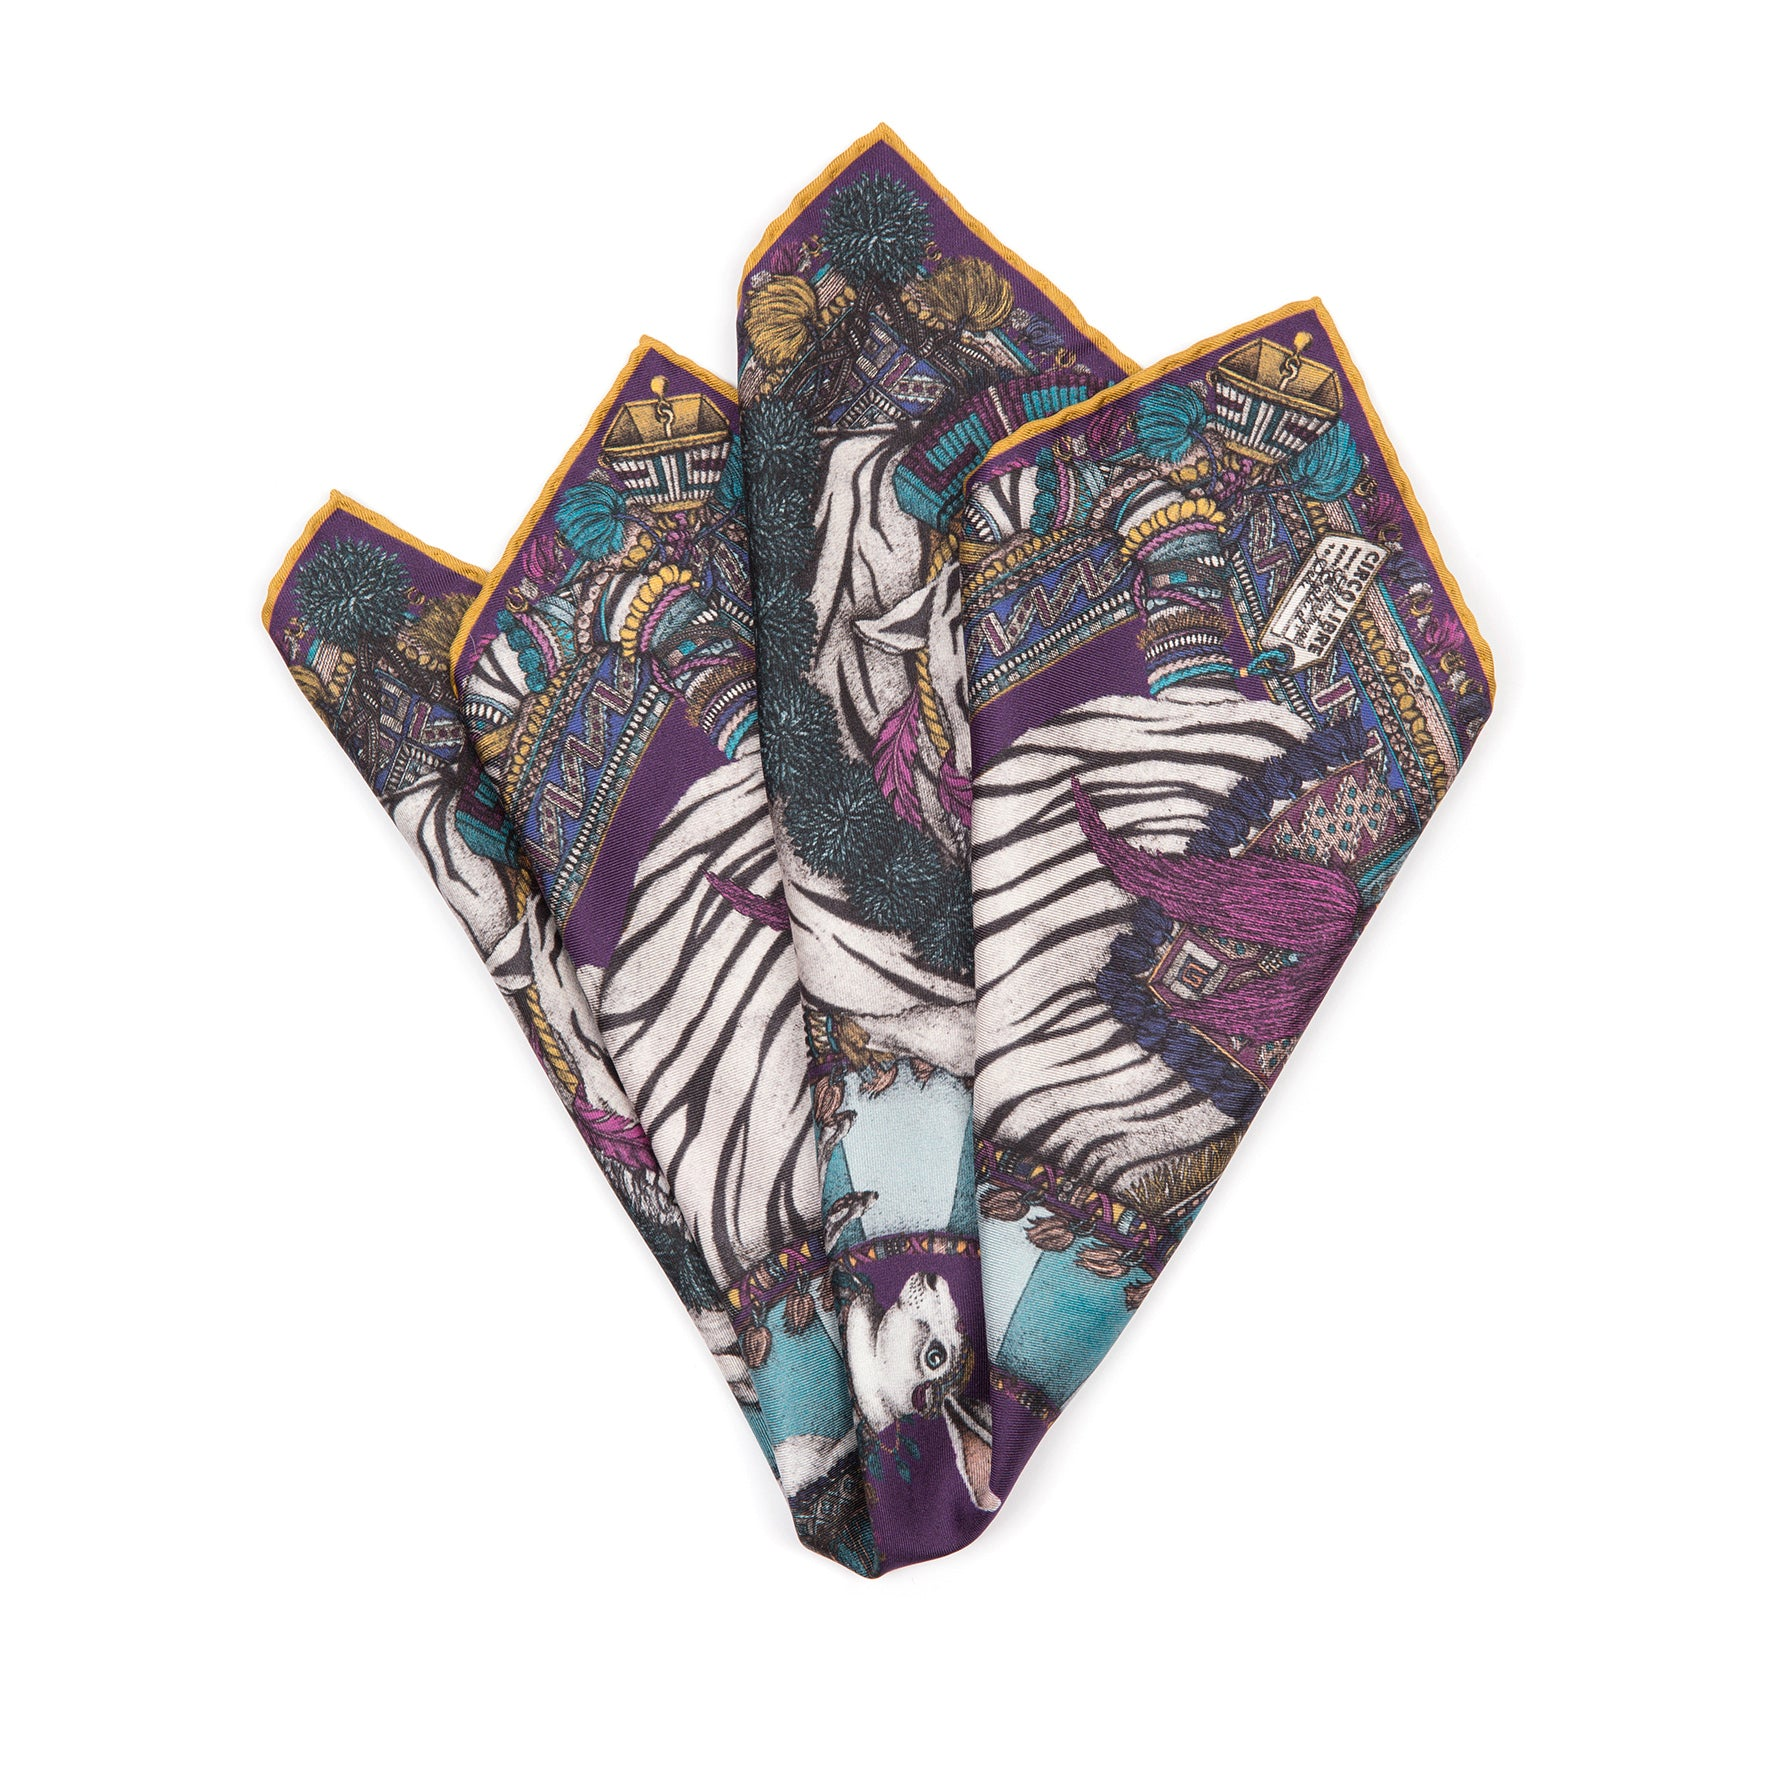 The Tassels Tiger Neckerchief/Pocket Square